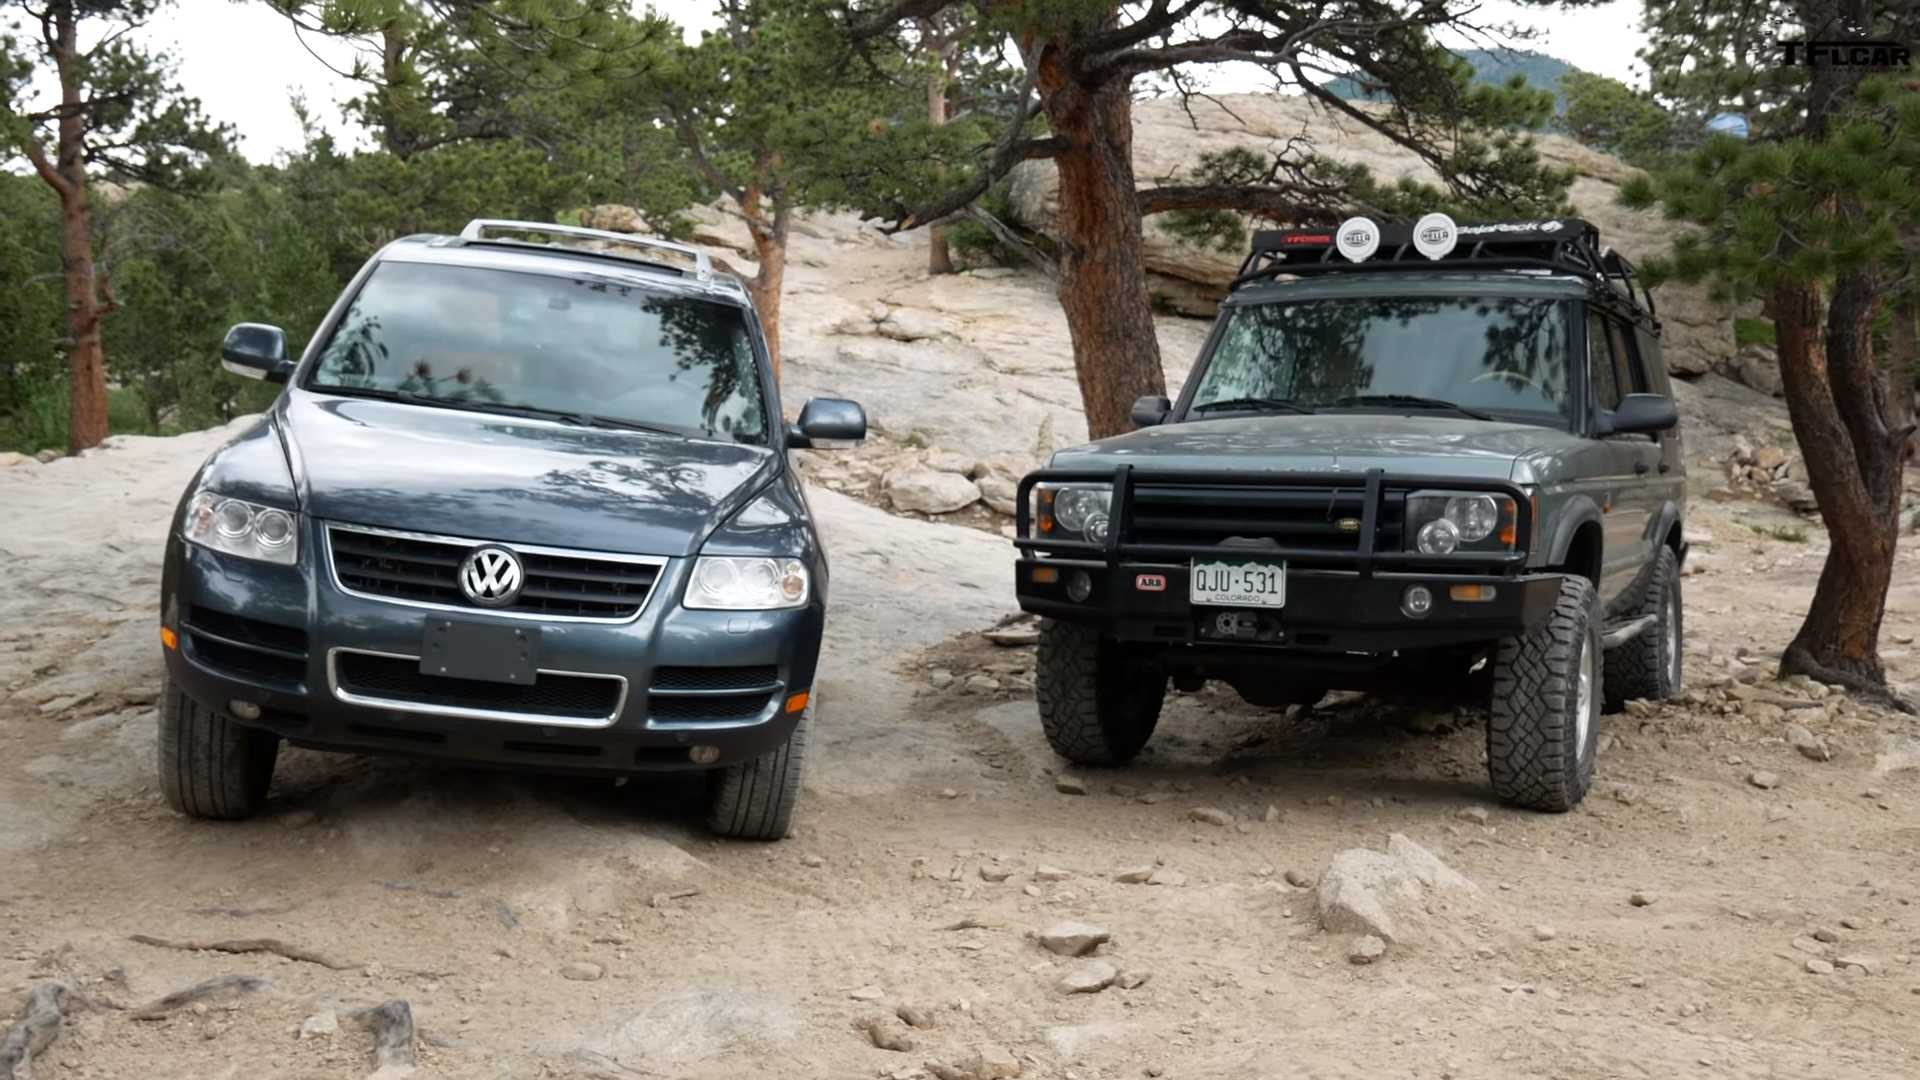 Vw Touareg Hold Its Own In Off Road Test Against Land Rover Discovery